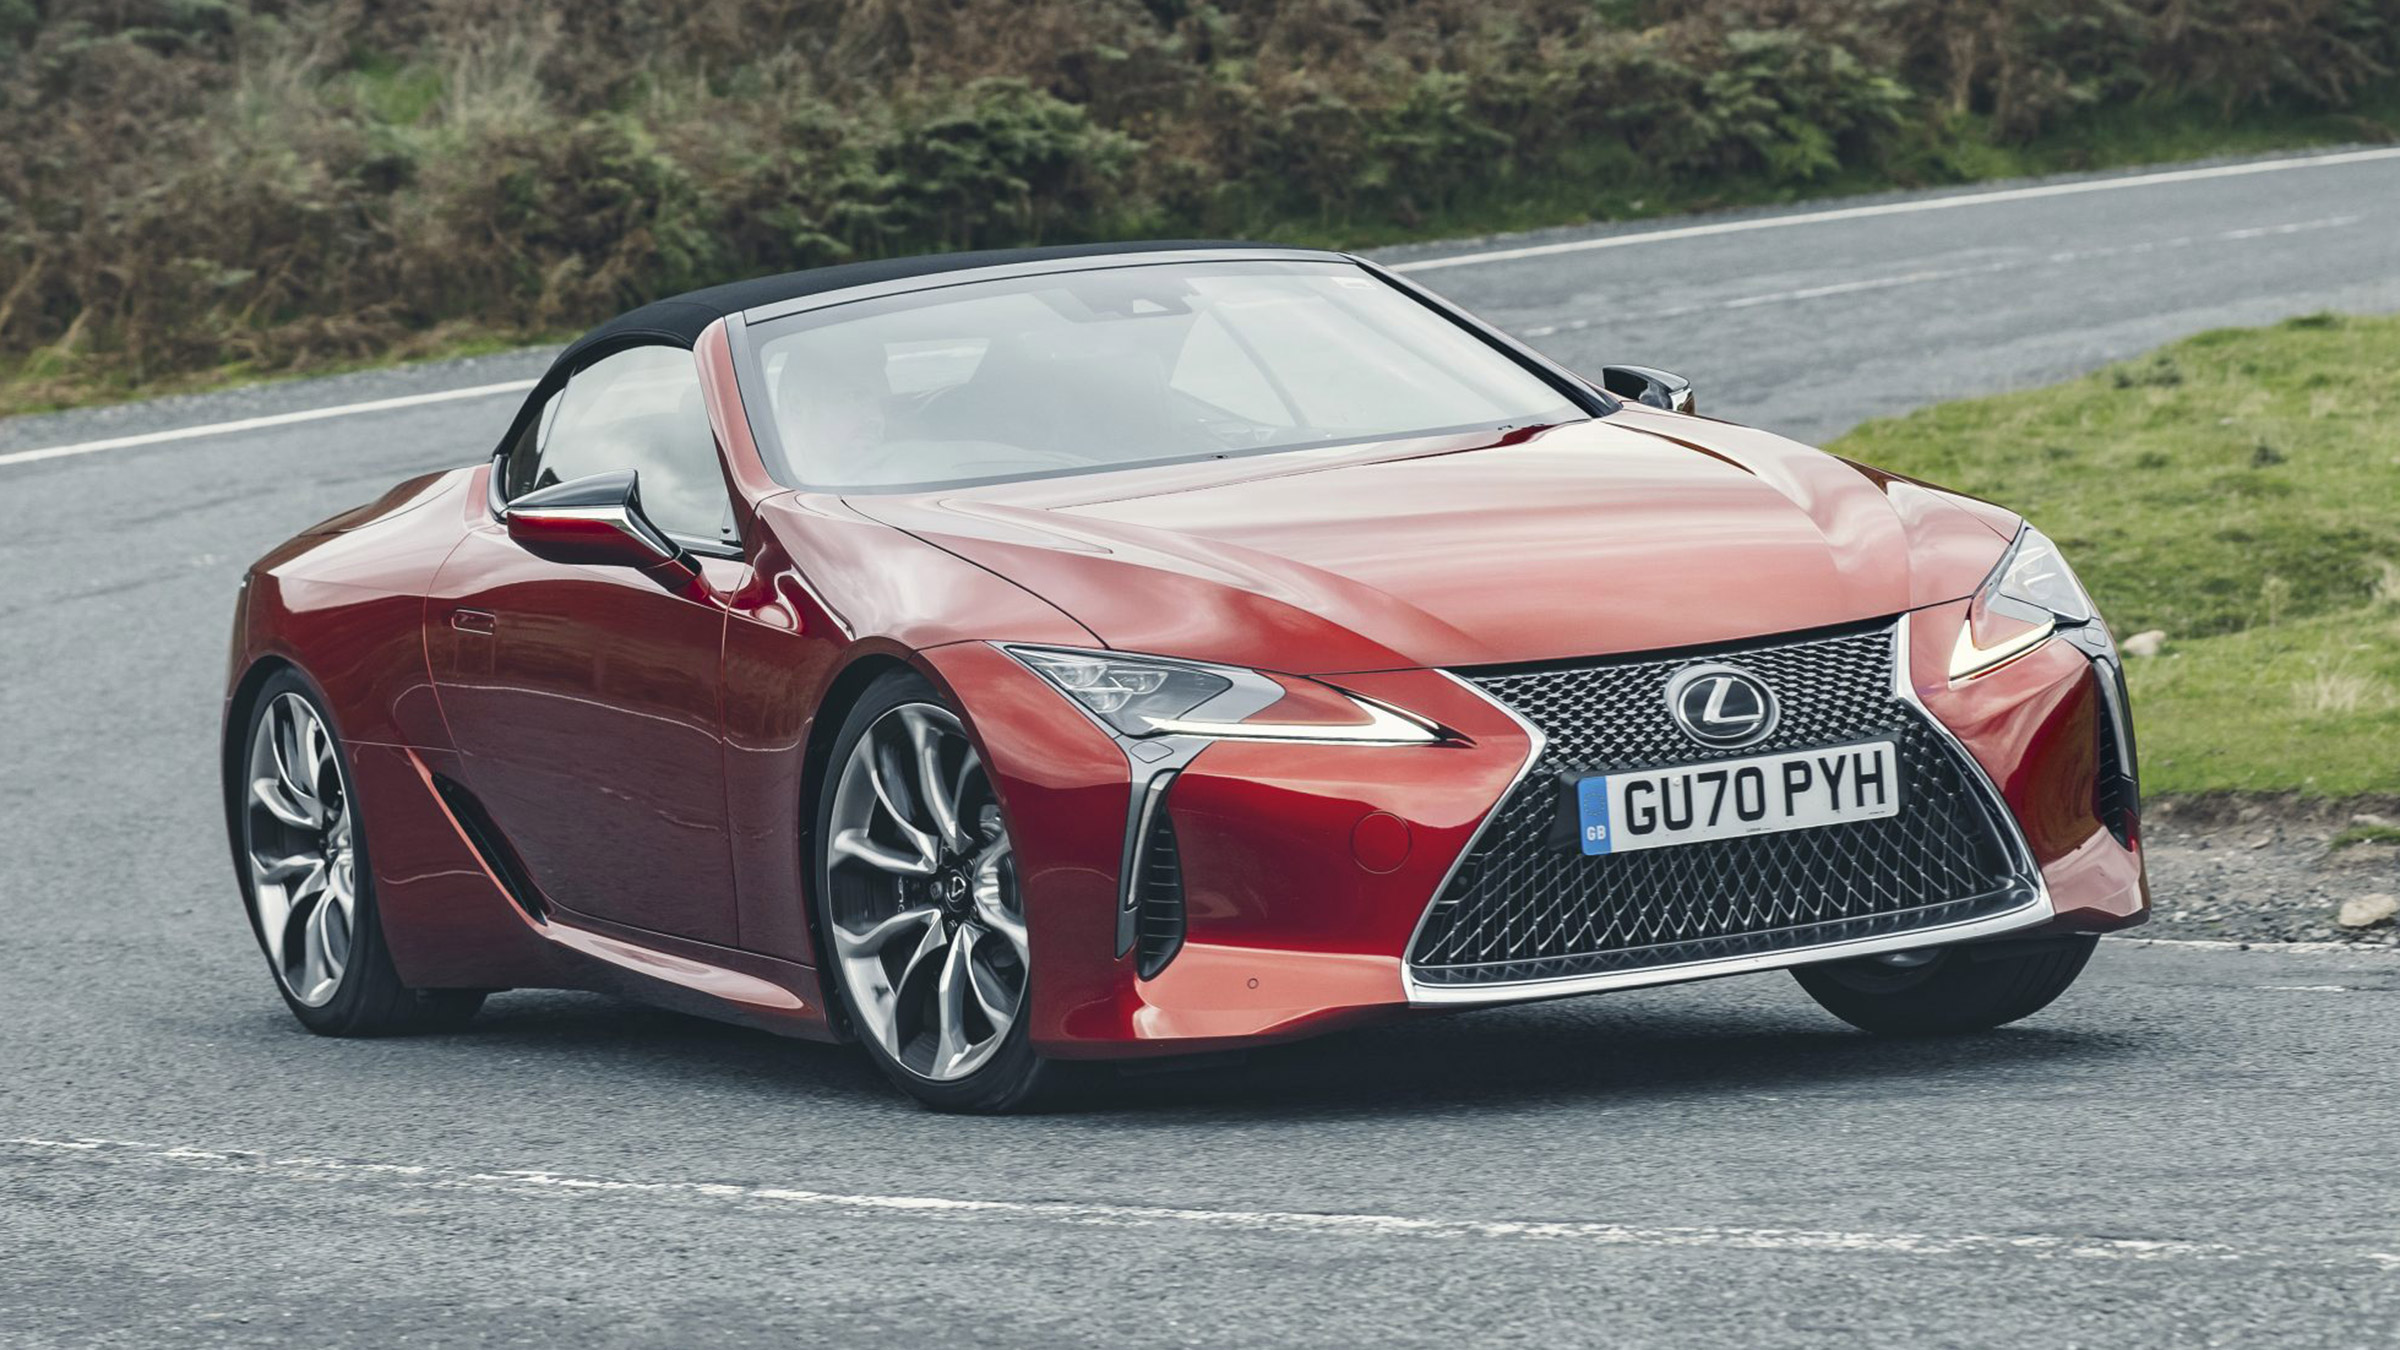 lexus lc convertible 2020 review   carbuyer